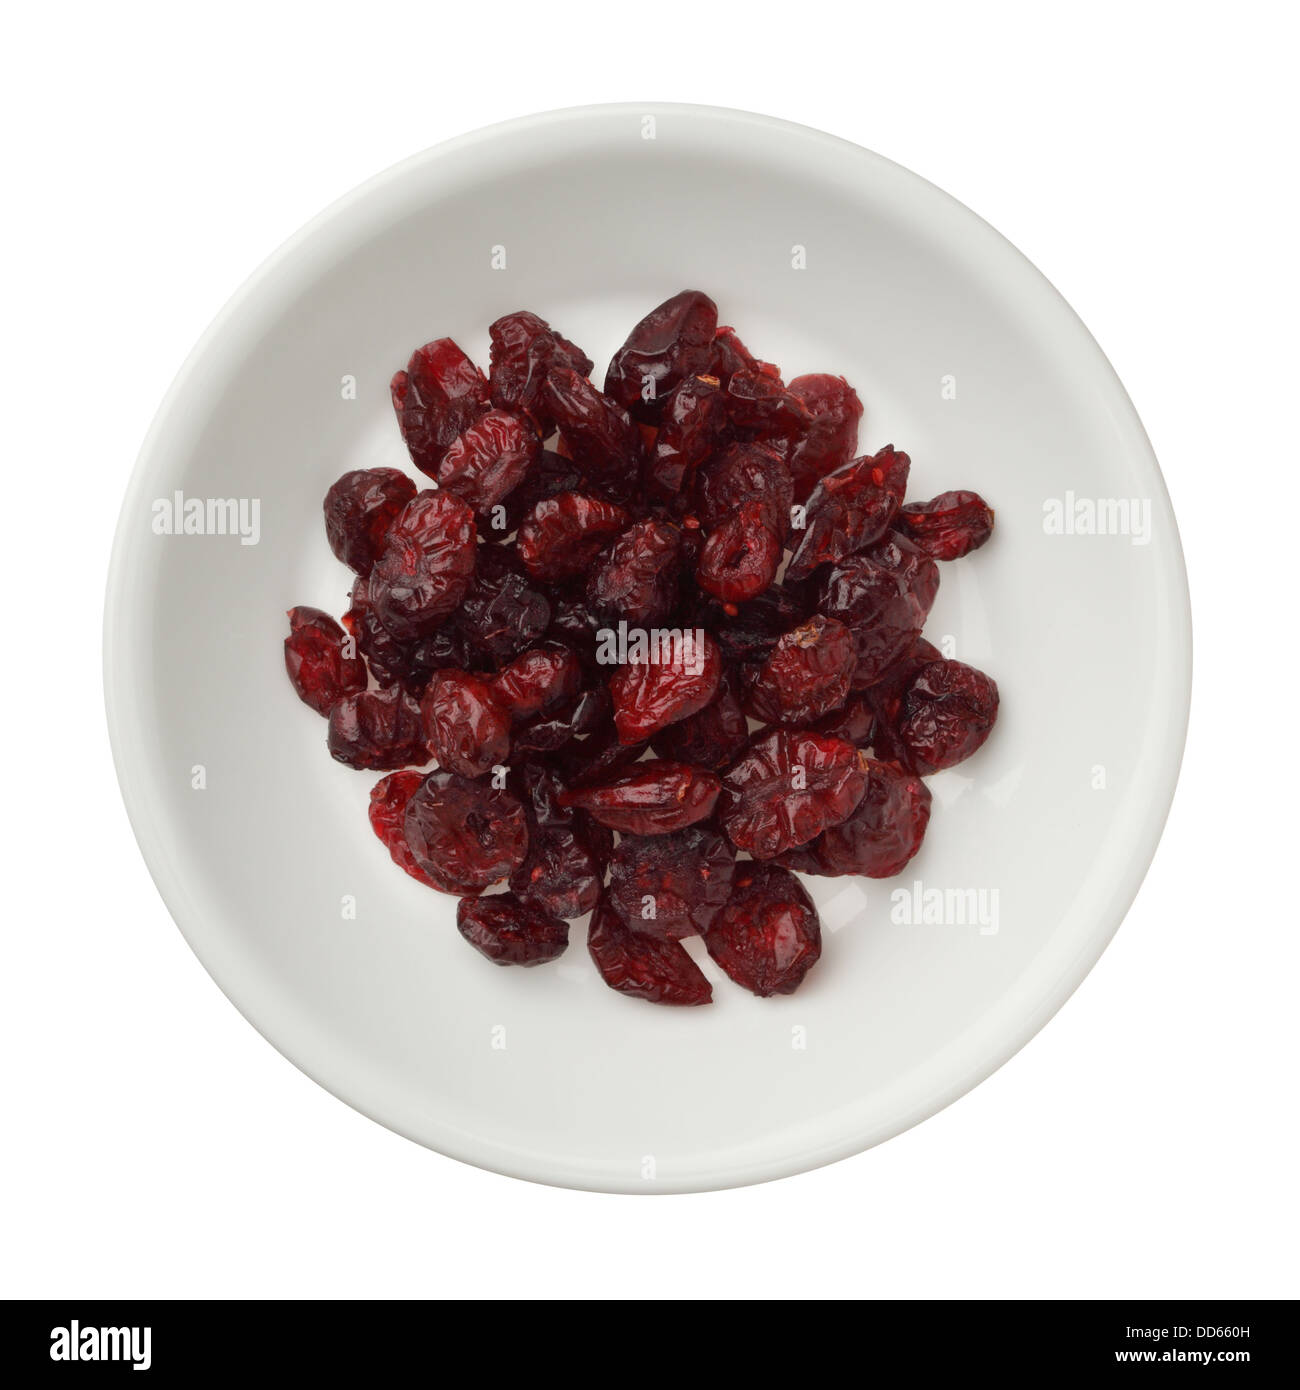 Dried cranberries in a bowl isolated on white background - Stock Image